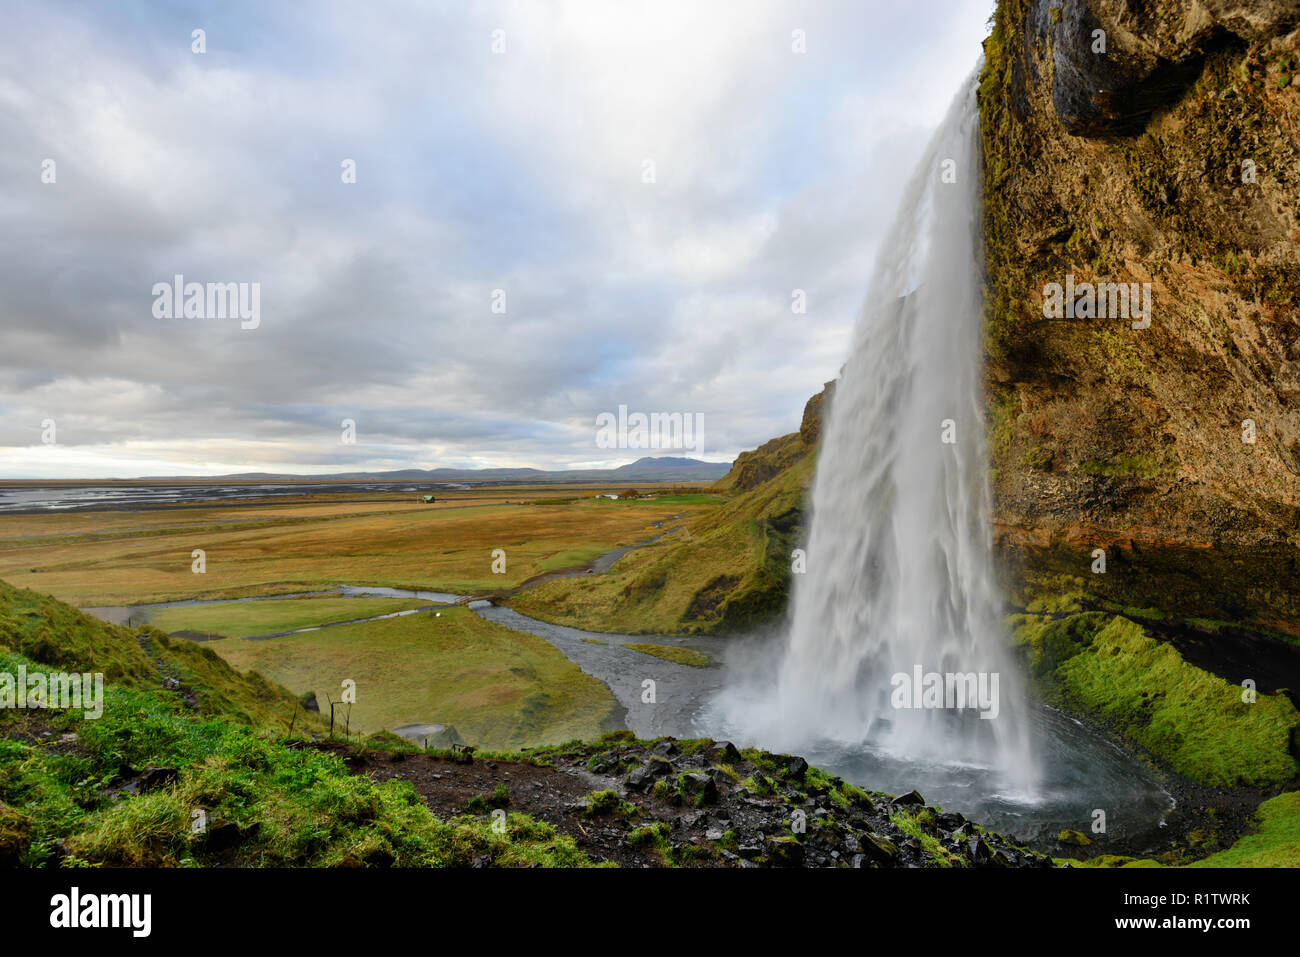 Majestic Seljalandsfoss, the most famous waterfall in Iceland. Sunset landscape. Beautiful tourist attraction in one of the main holiday destinations. Stock Photo